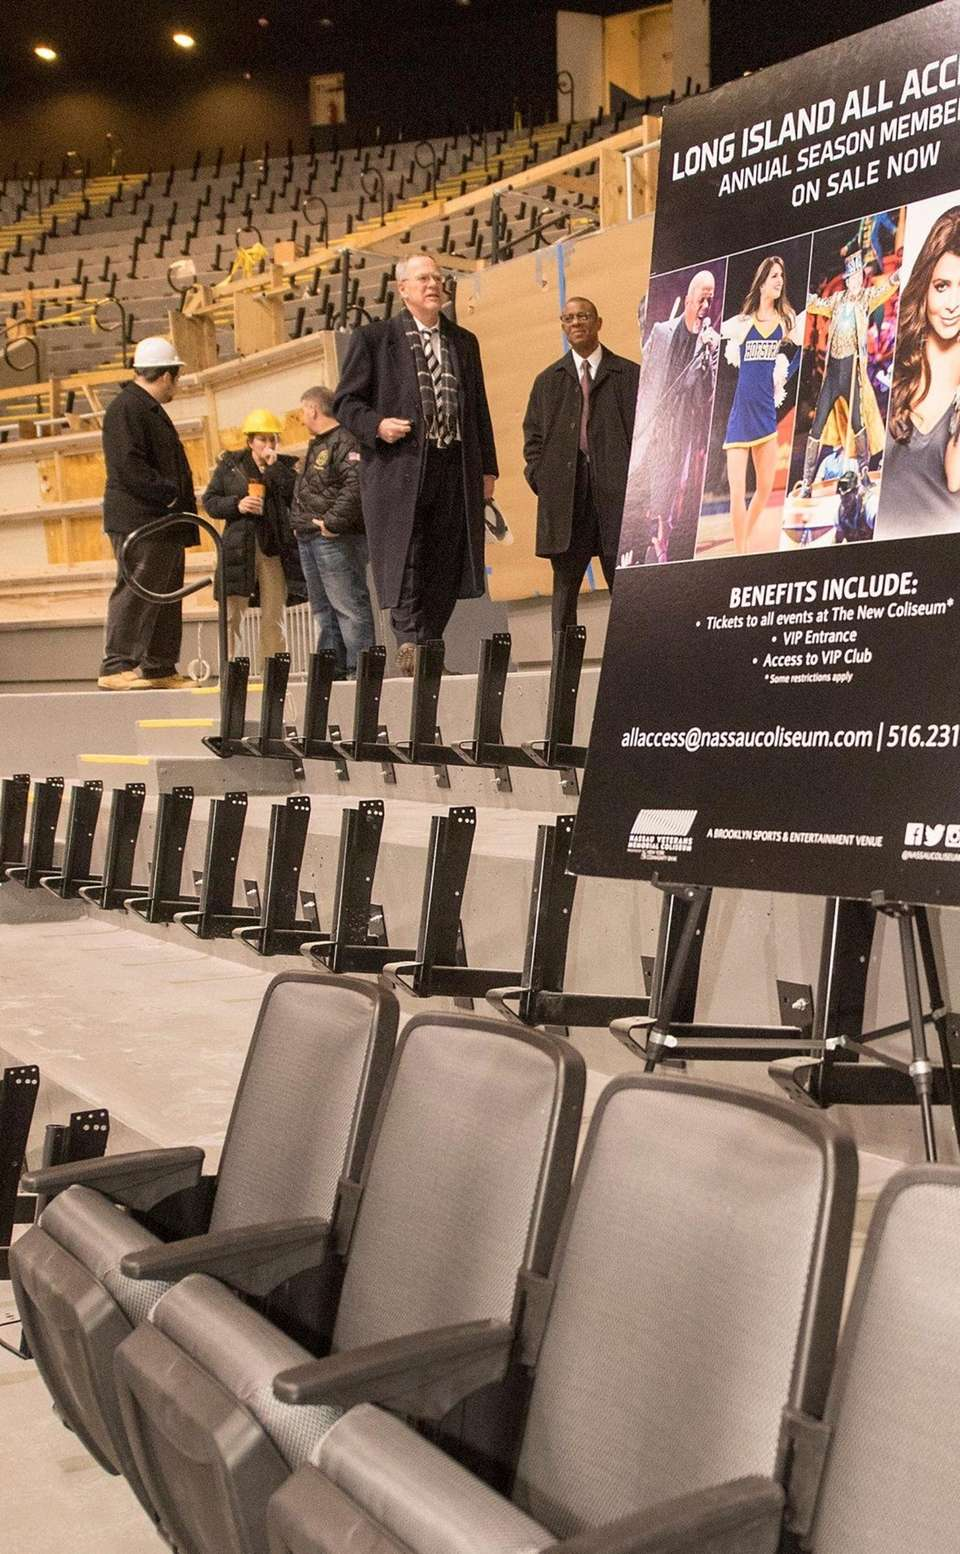 The first seats at renovated Nassau Coliseum unveiled